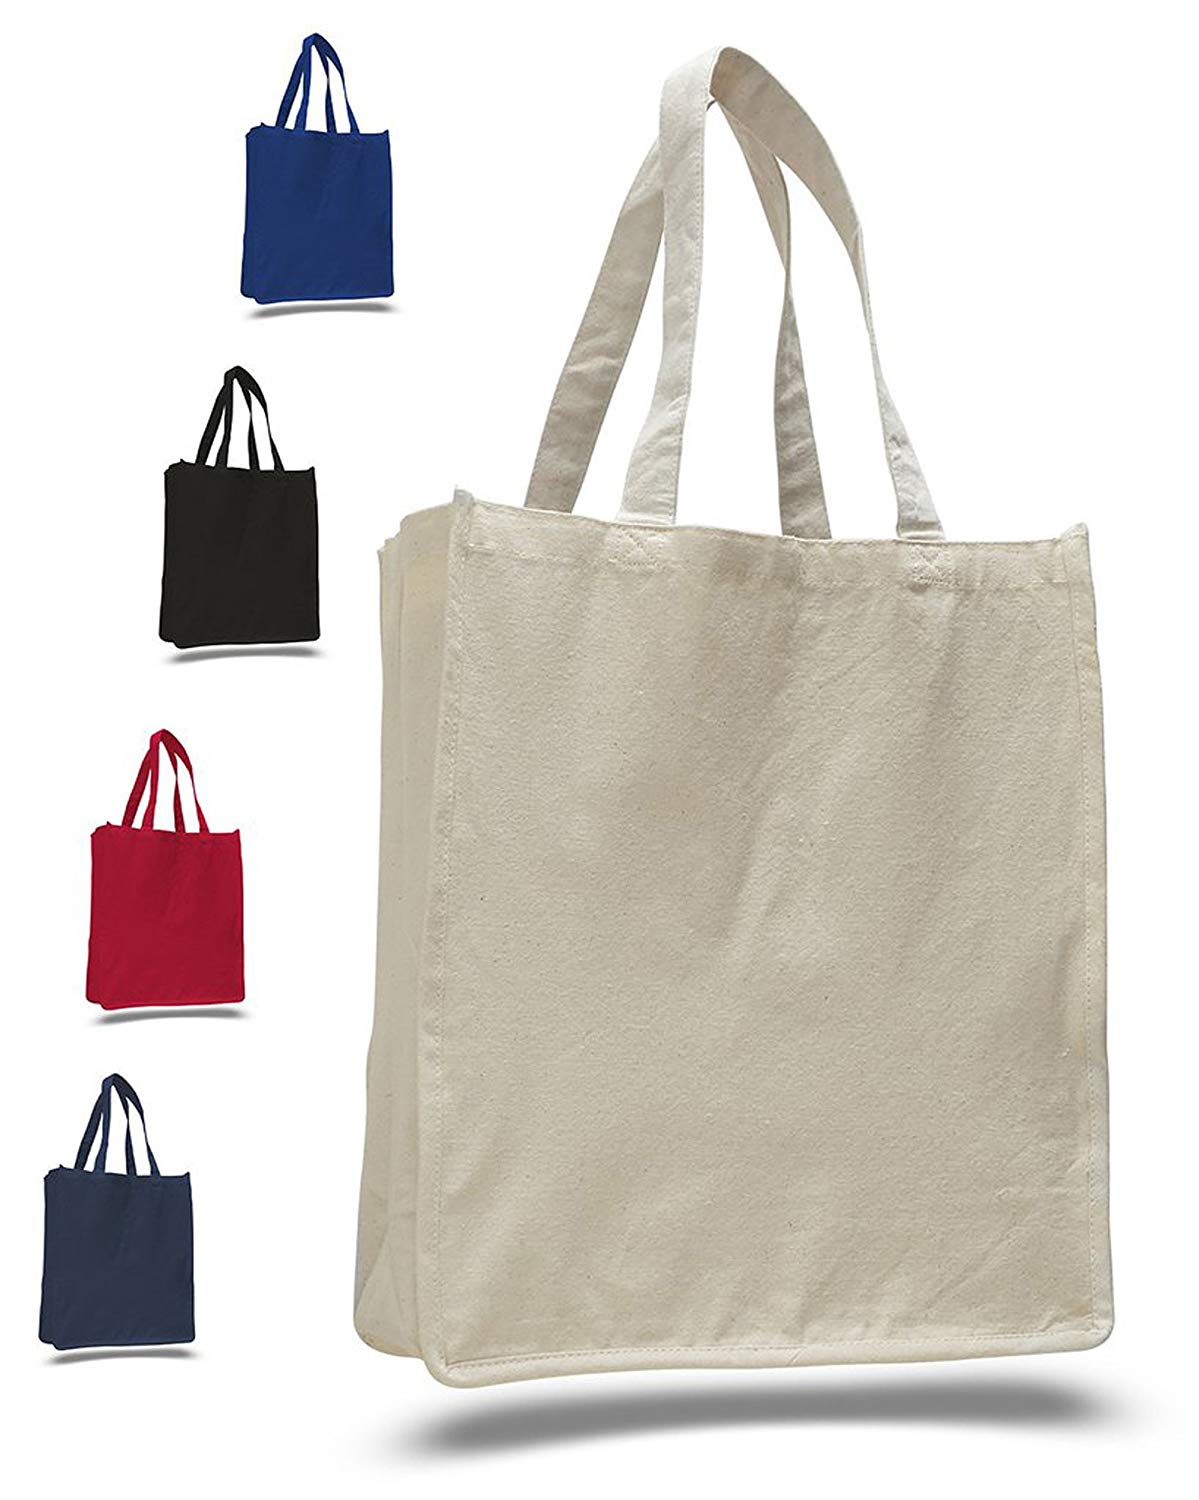 21b0136ac6d5 Thick Material Heavy Canvas Reusable Grocery Blank Tote Bags - Full Side  and Bottom